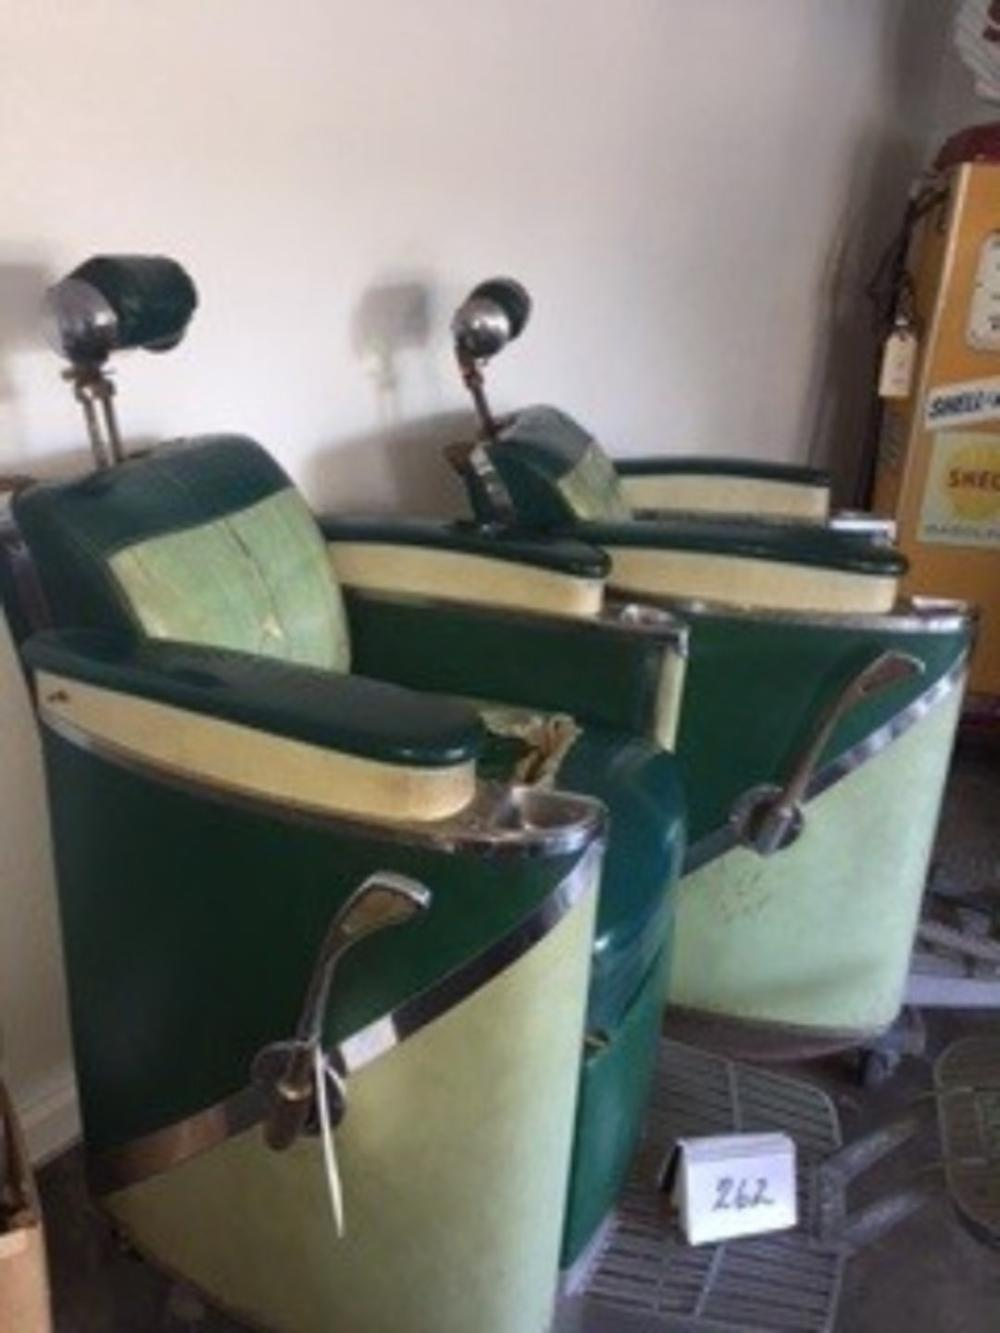 Koken President Barber Chair Late 1950s Early 1960s (2) HBC